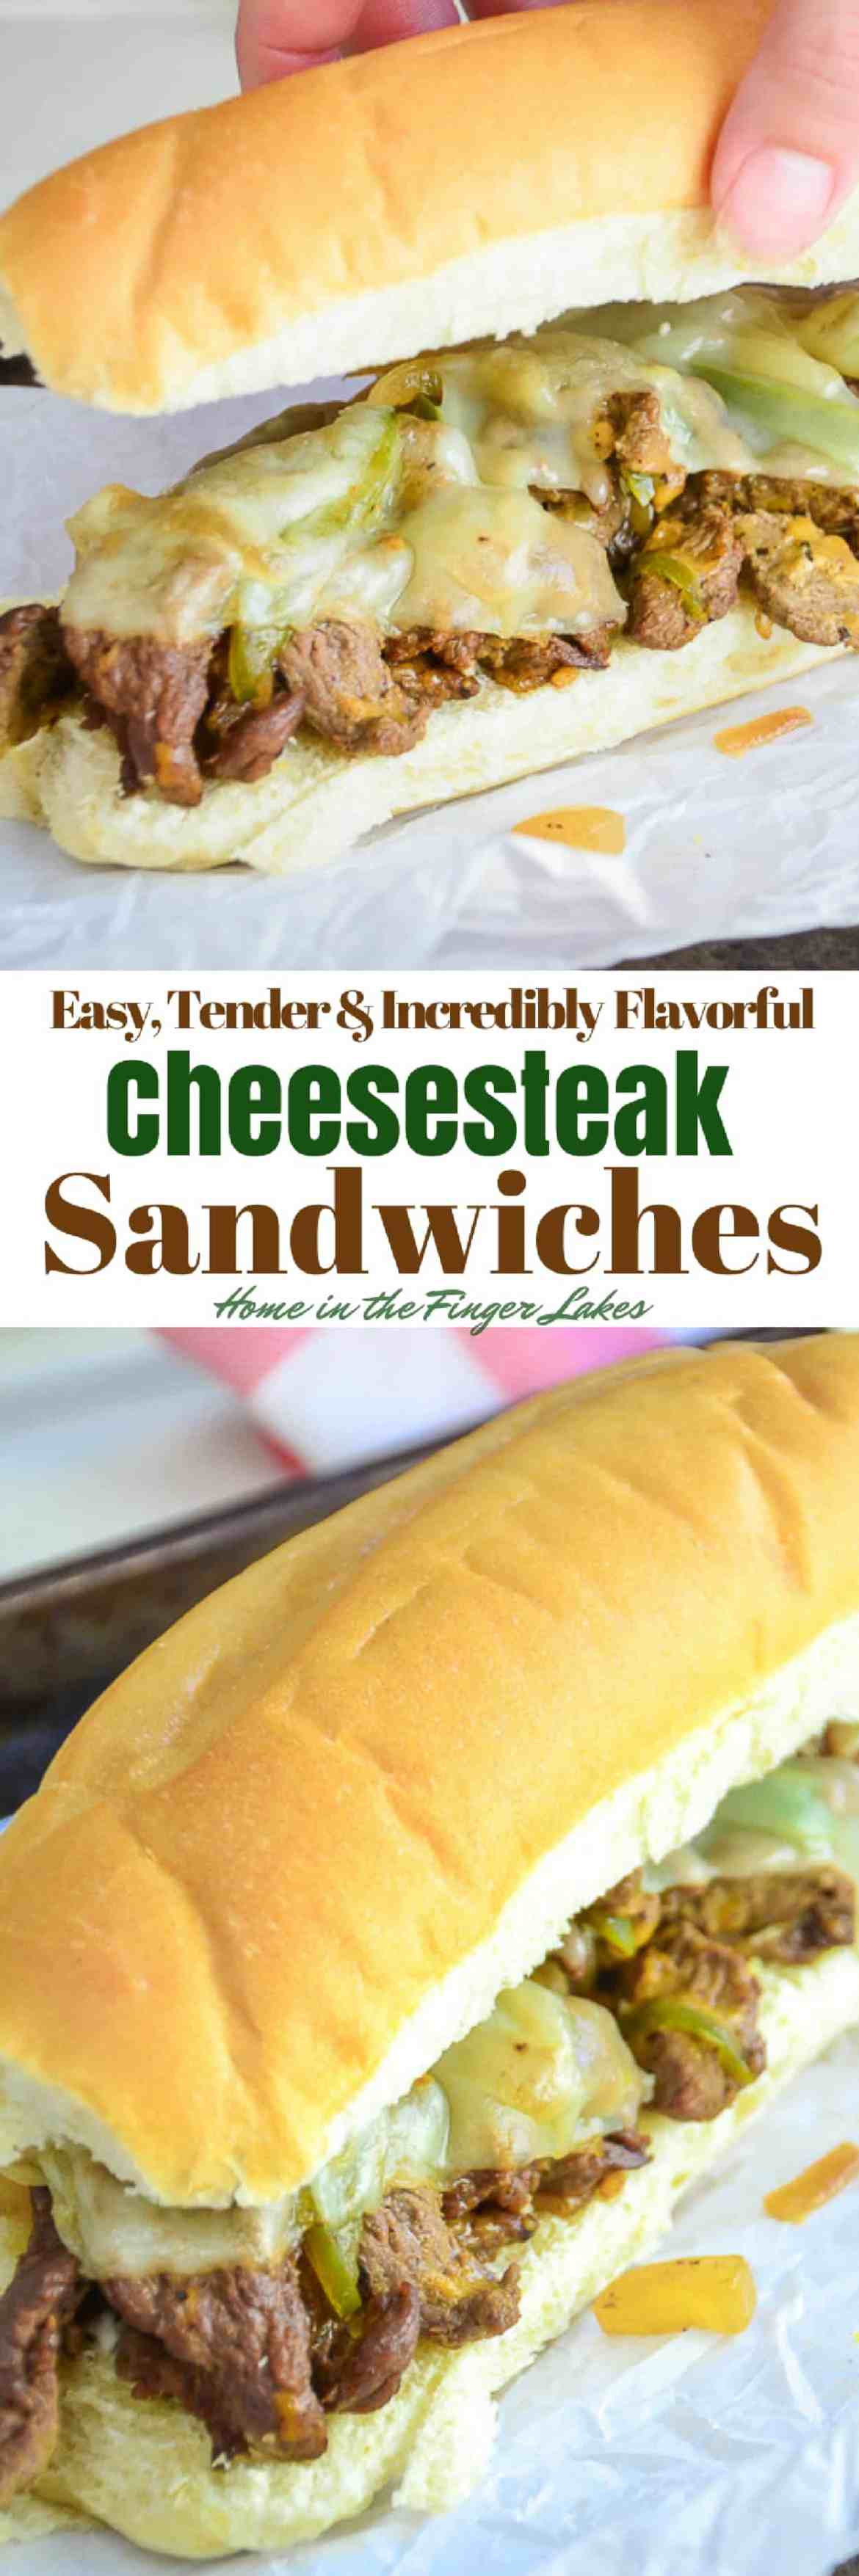 TheseInsanely Delicious (and Quick!) Cheesesteak Sandwiches are the answer to a busy evening when you are exhausted and everyone is hungry.